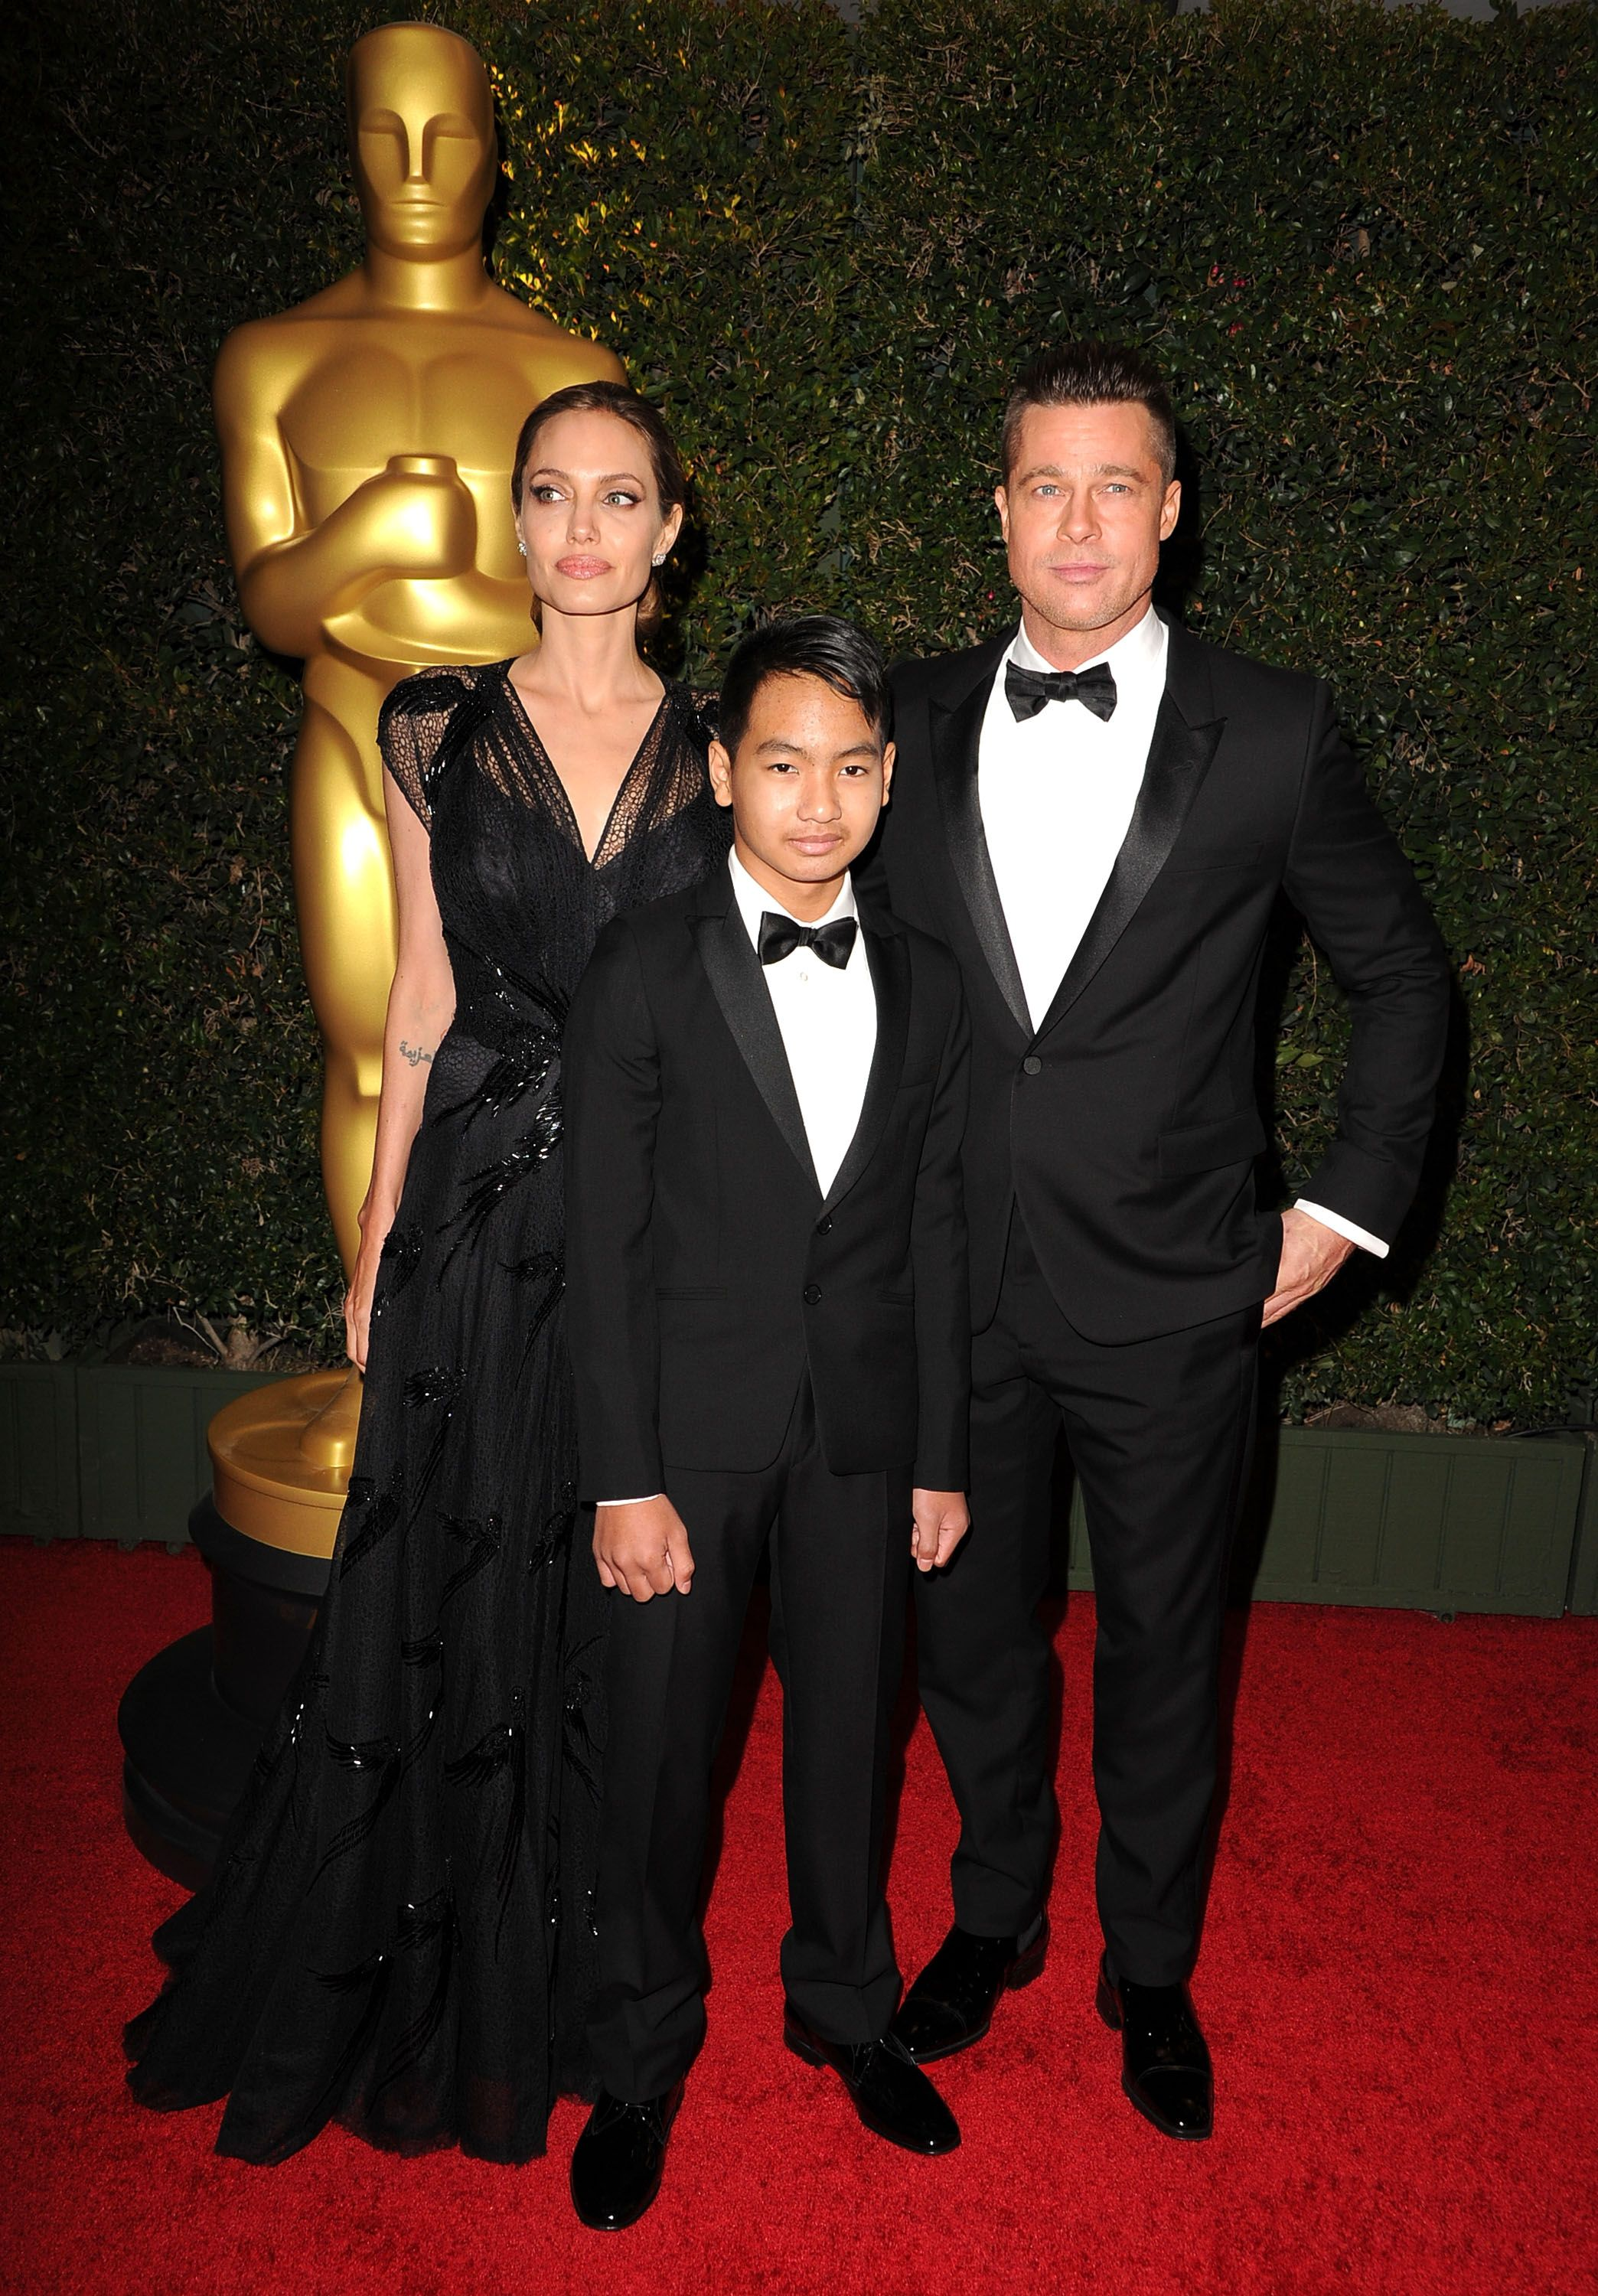 Brad Pitt, Maddox Jolie-Pitt and Angelina Jolie/Photo:Getty Images